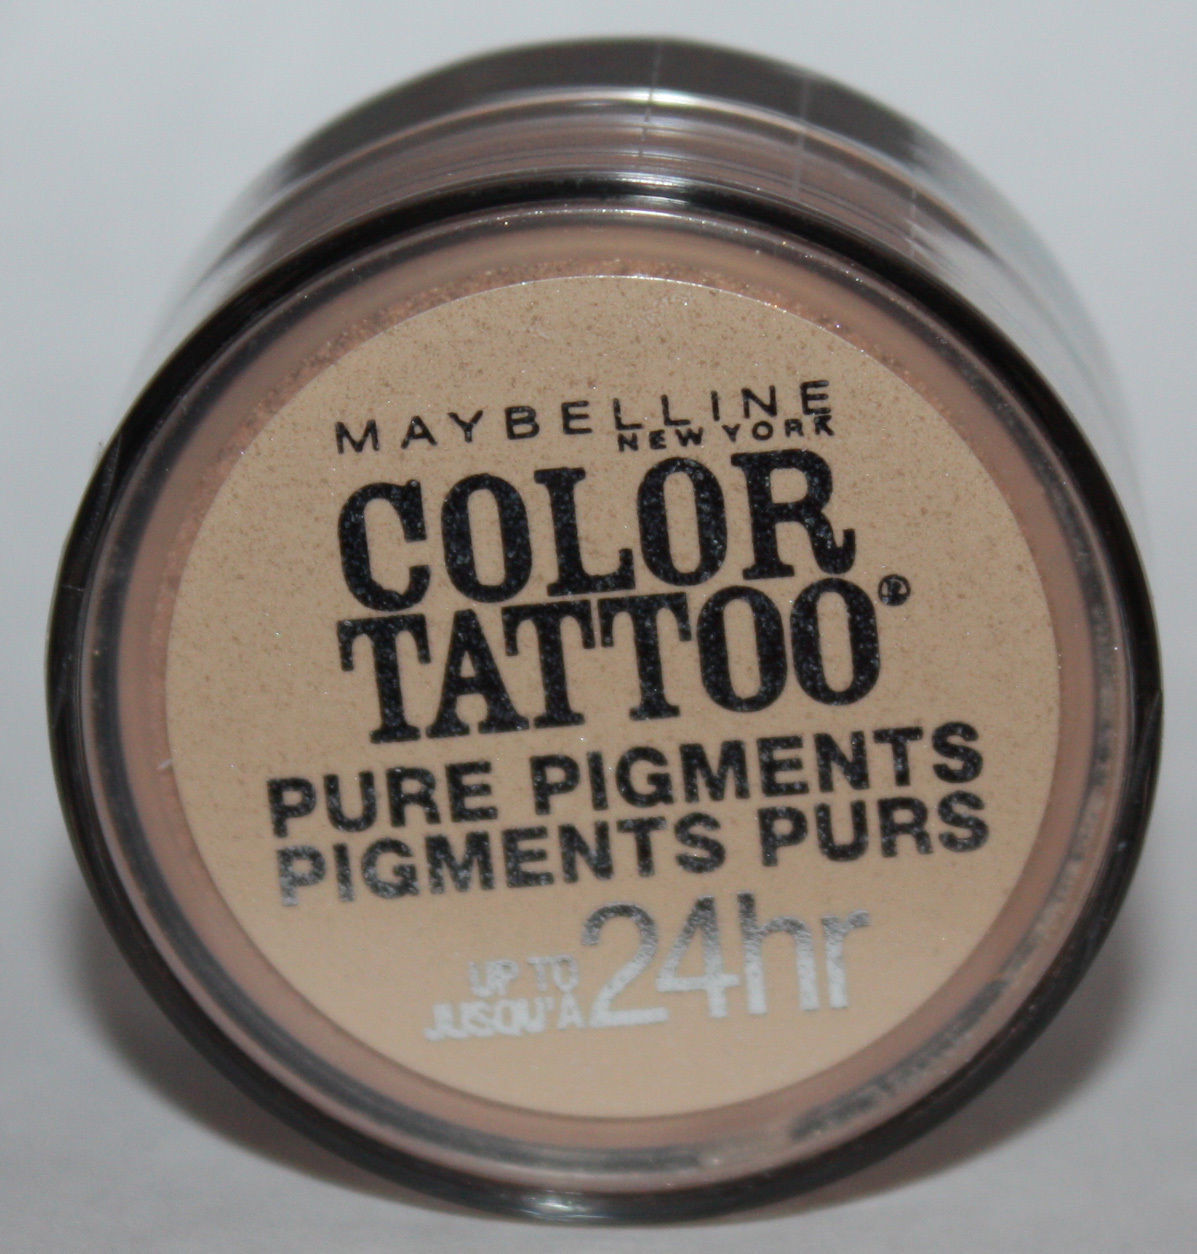 Maybelline Color Tattoo Pure Pigments Eyeshadow -#55 Barely Brazen